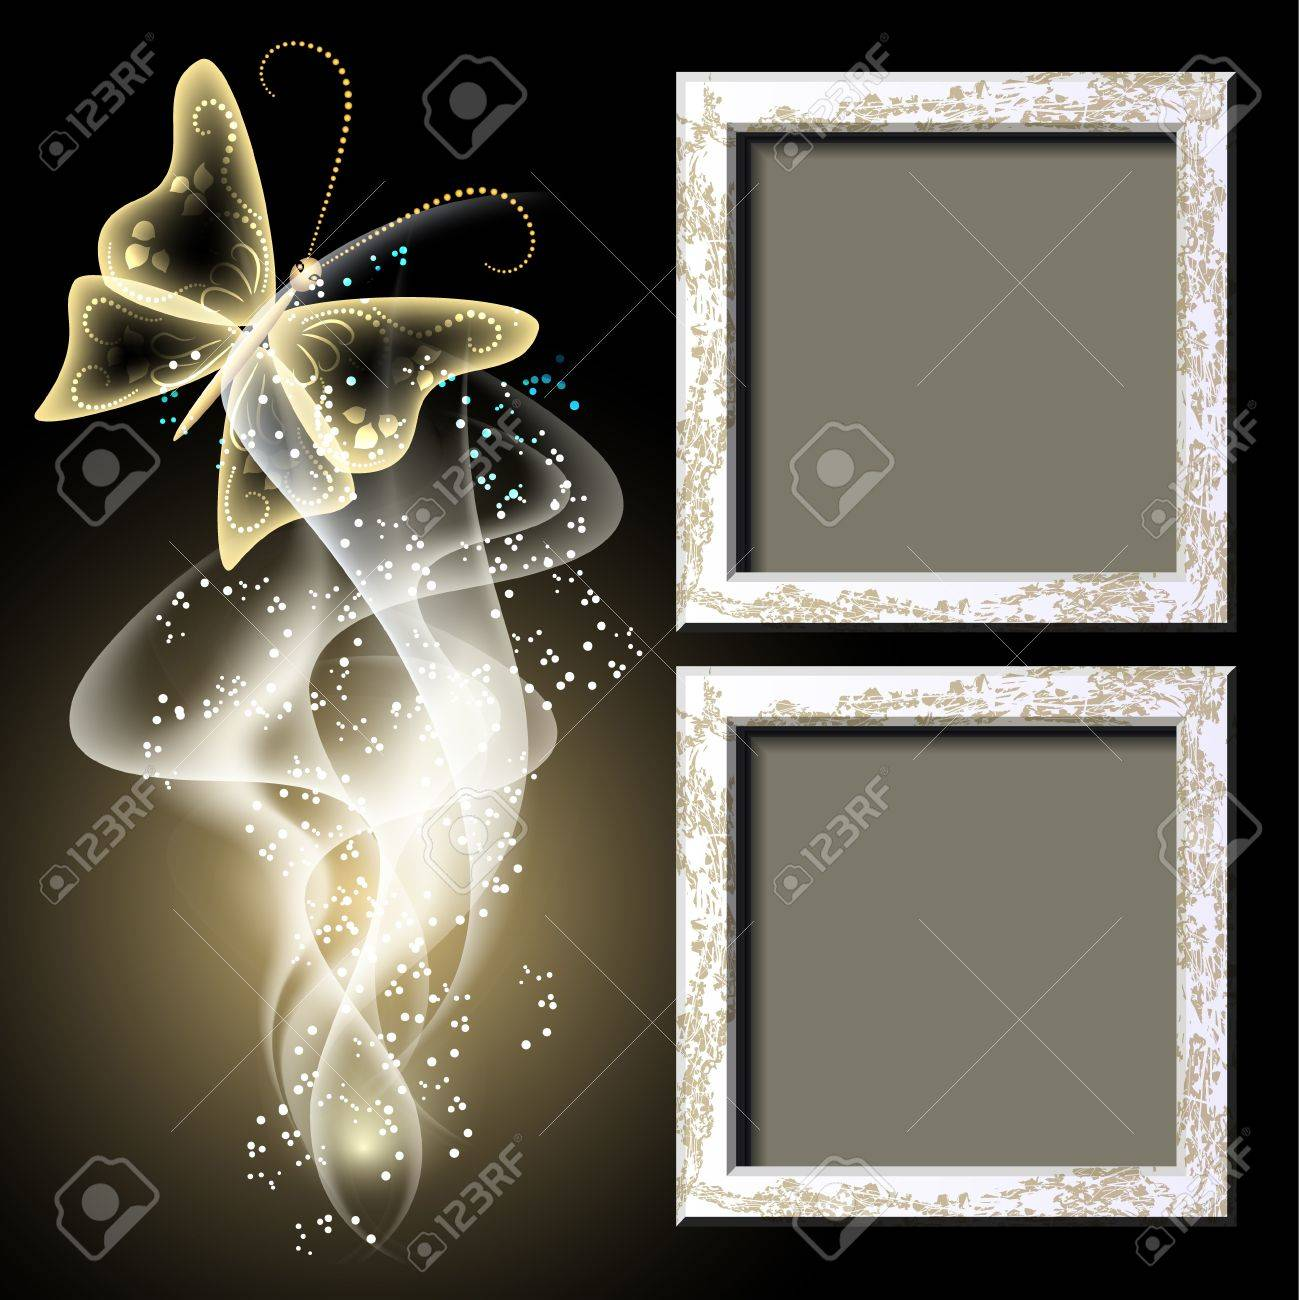 Background with grungy photo frame, butterfly and smoke for inserting text and photo - 13781937